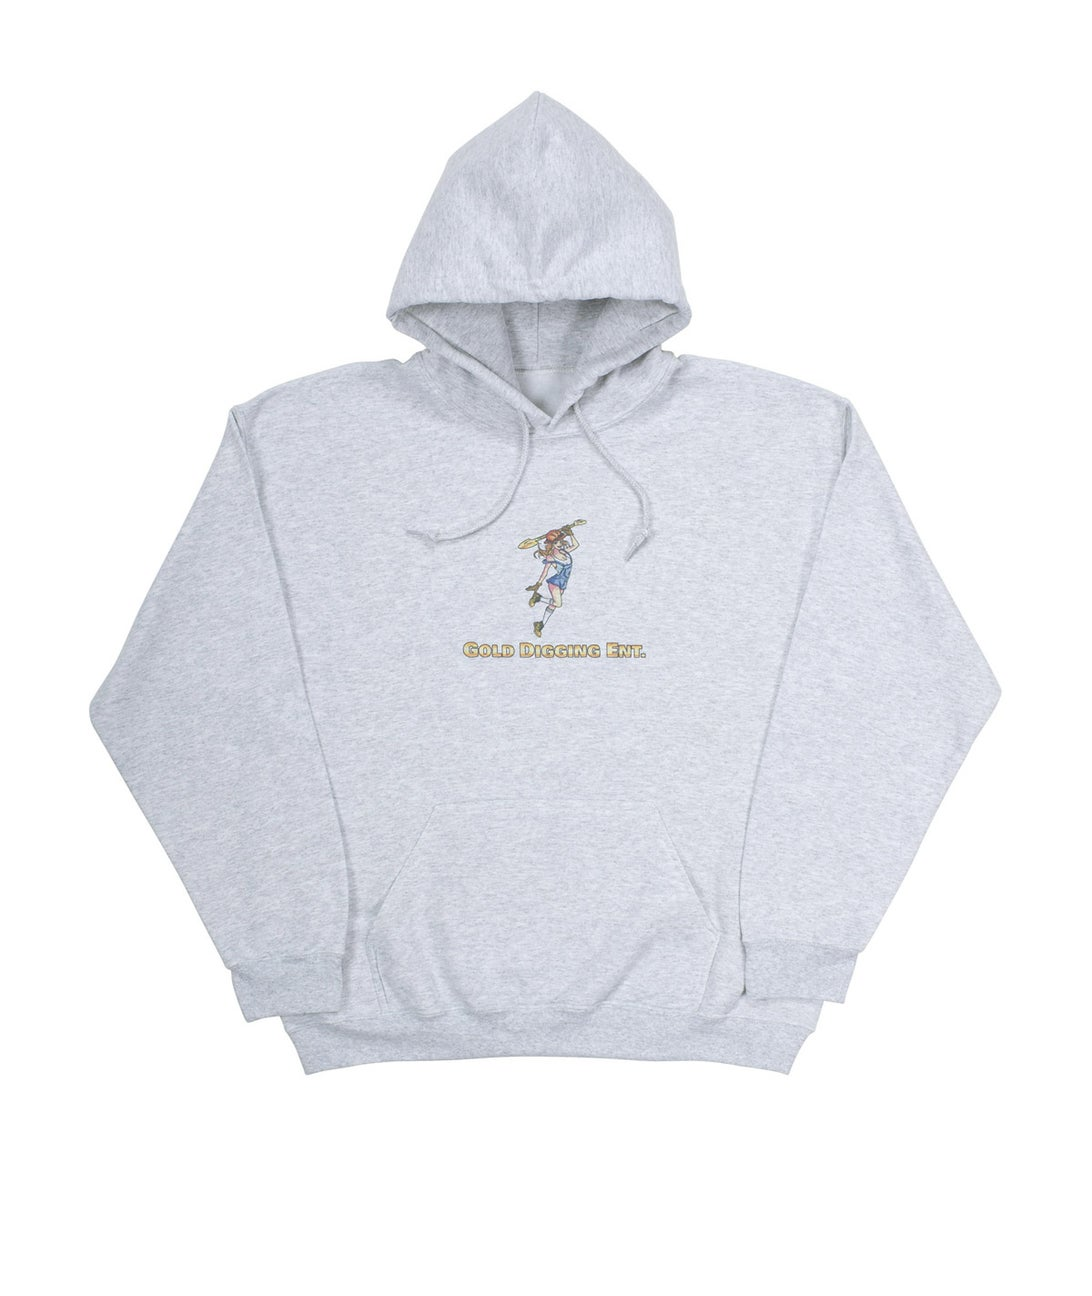 Image of Gold Digger Hoodie